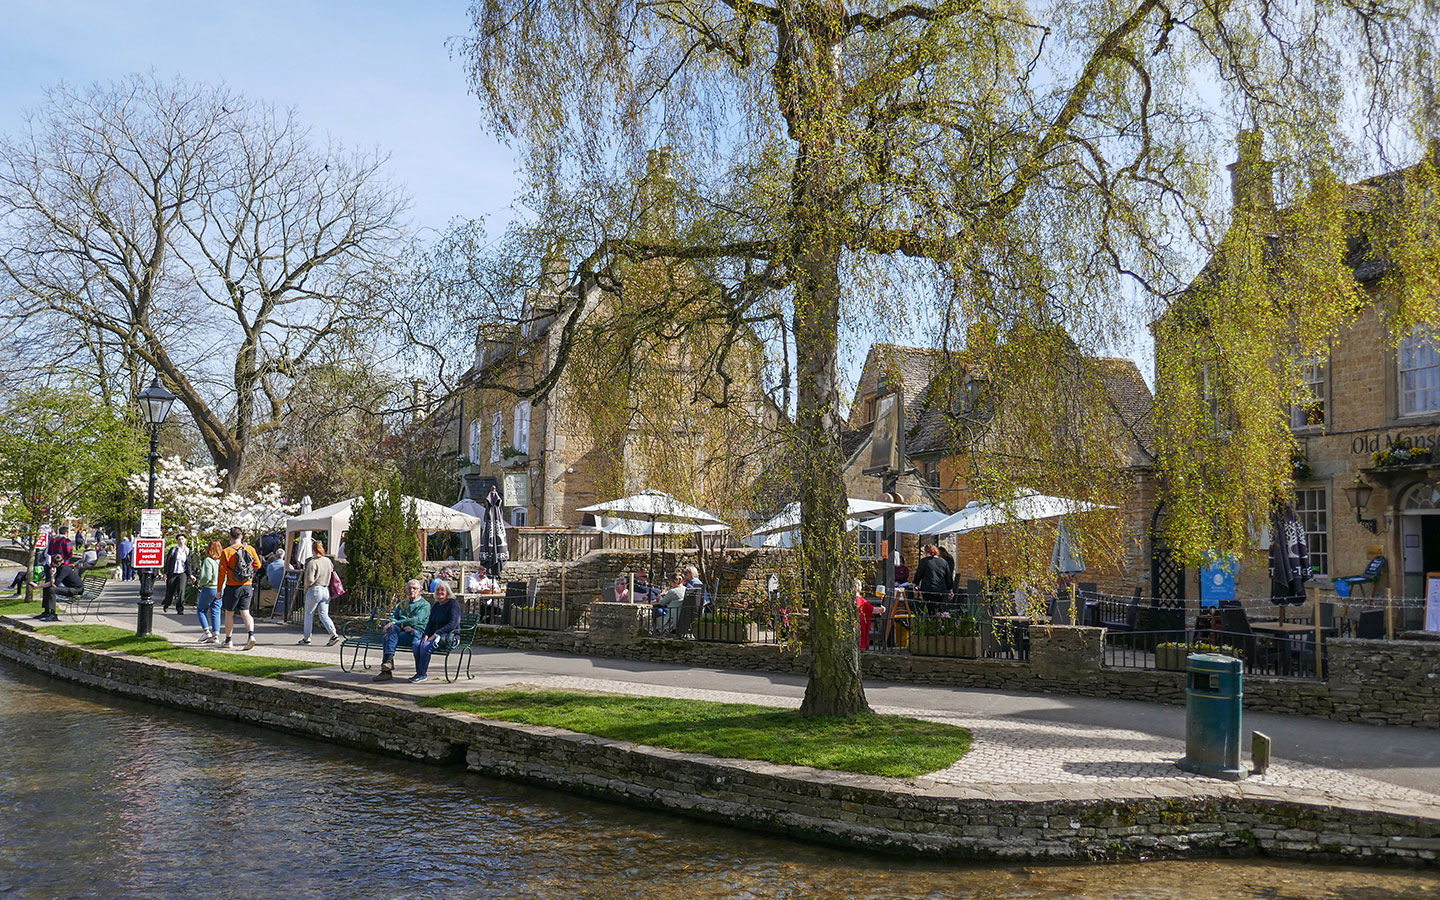 Restaurants along the River Windrush in Bourton-on-the-Water